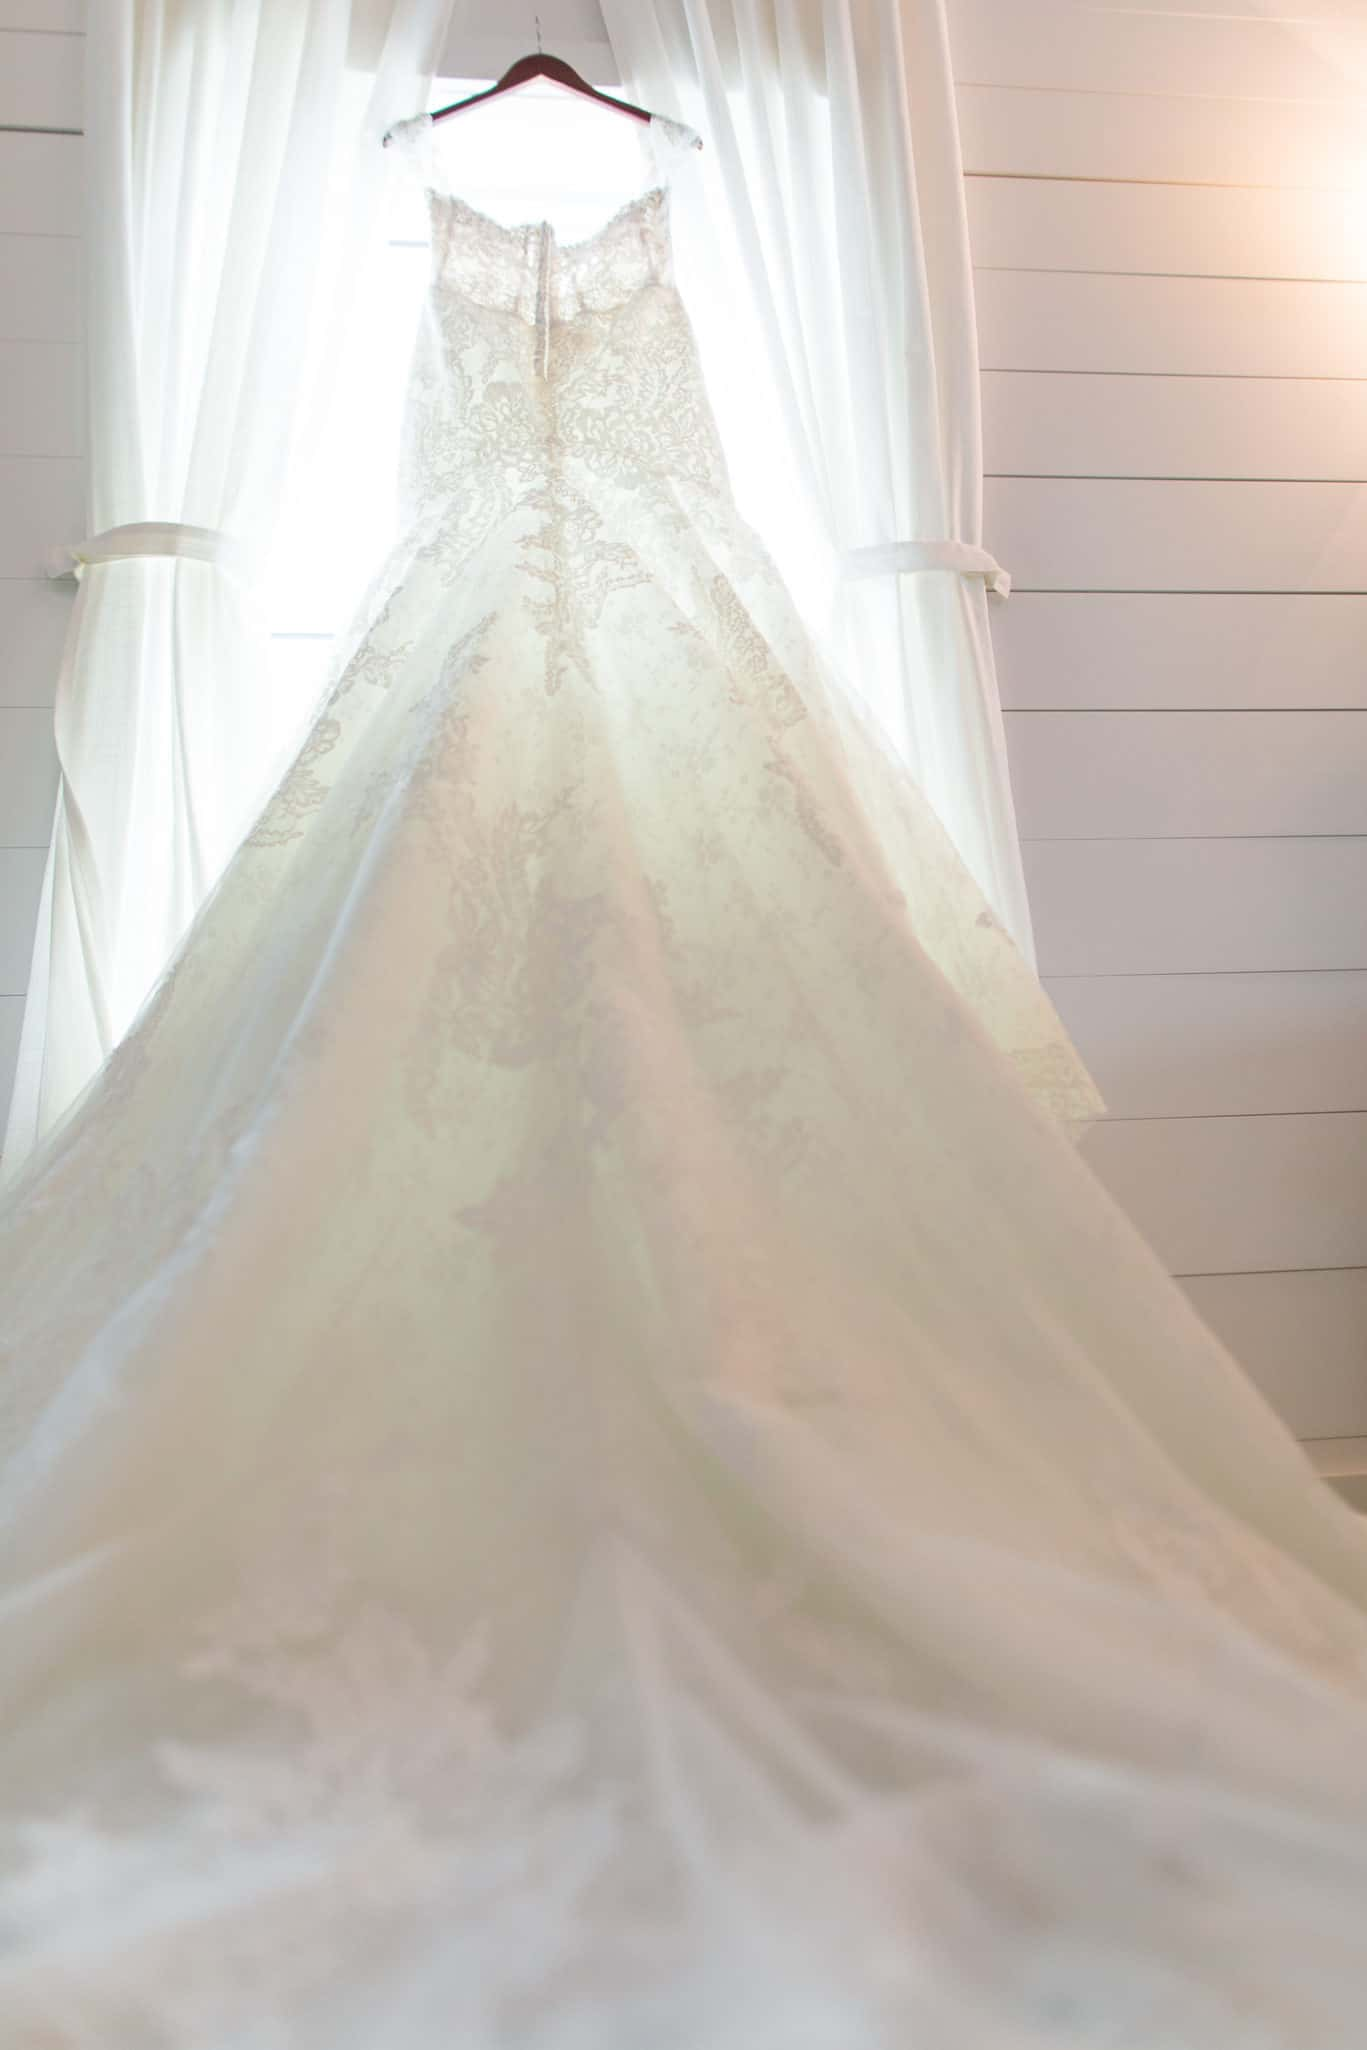 Bridal extraordinaire gown at Mia's bridal provided gorgeous suits for wedding at The Farms at Woodend Springs wedding venue in Bonner Springs Kansas